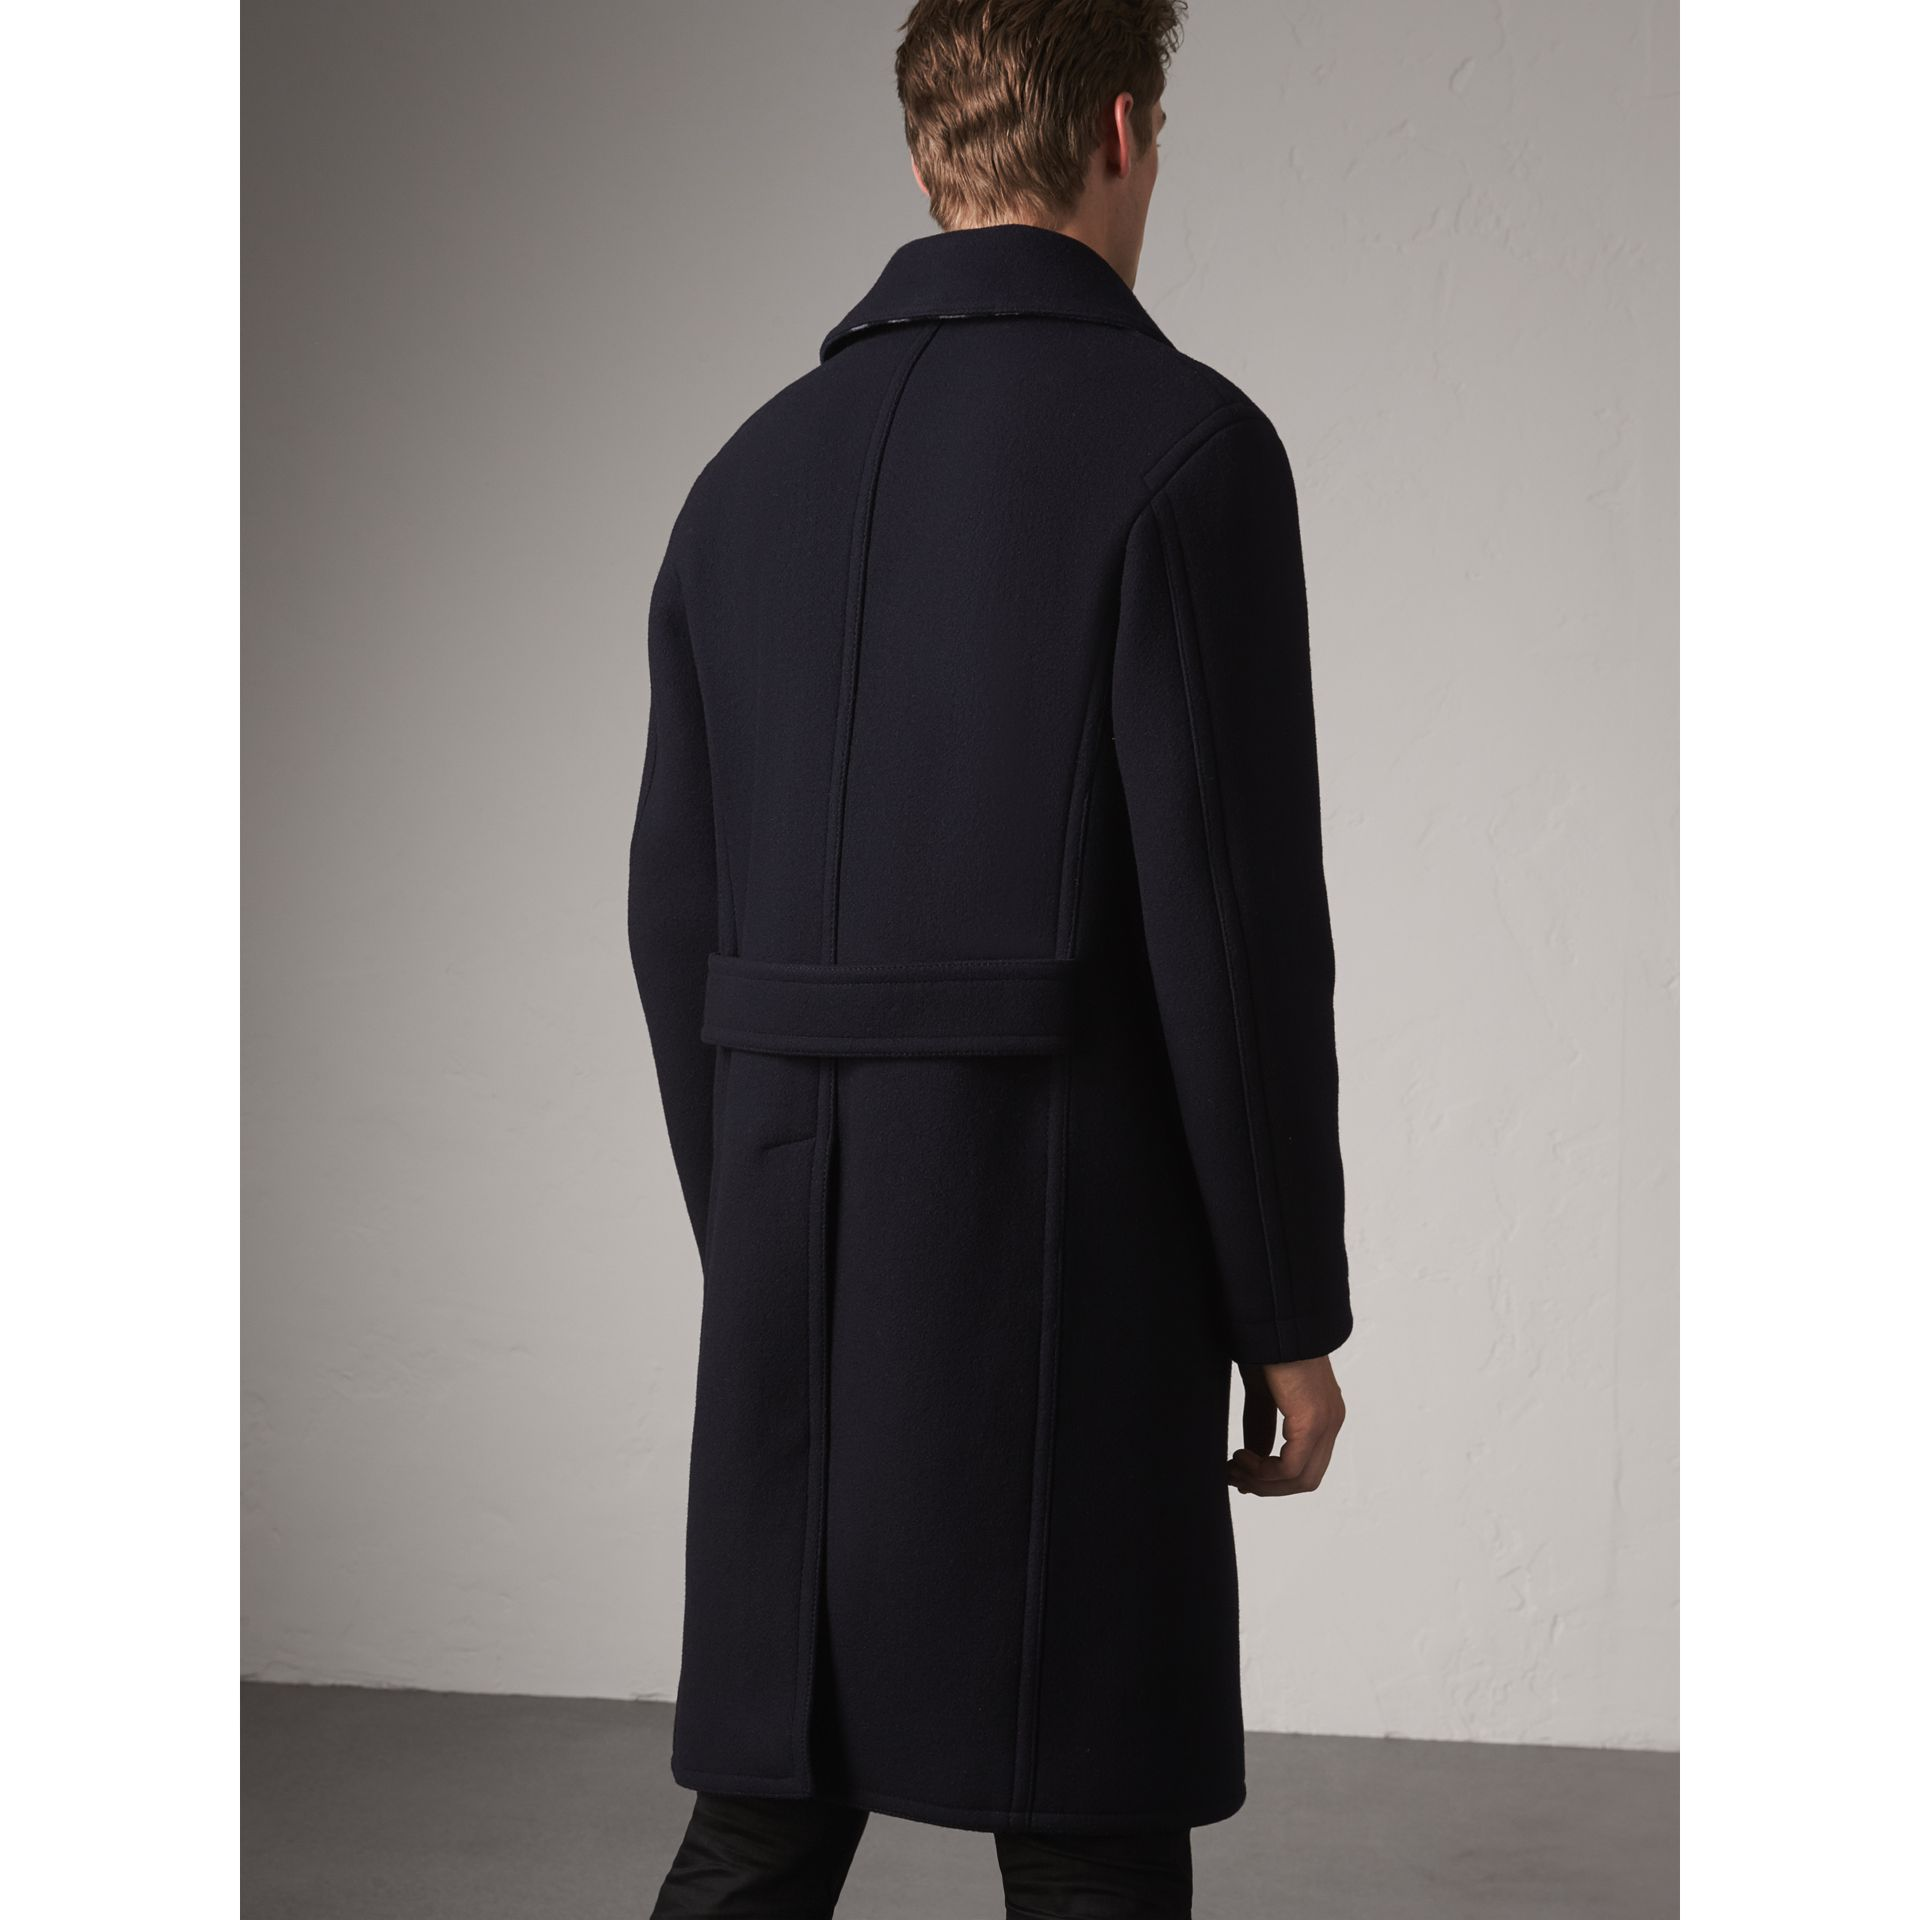 Wool Blend Double-breasted Coat in Navy - Men | Burberry Australia - gallery image 2